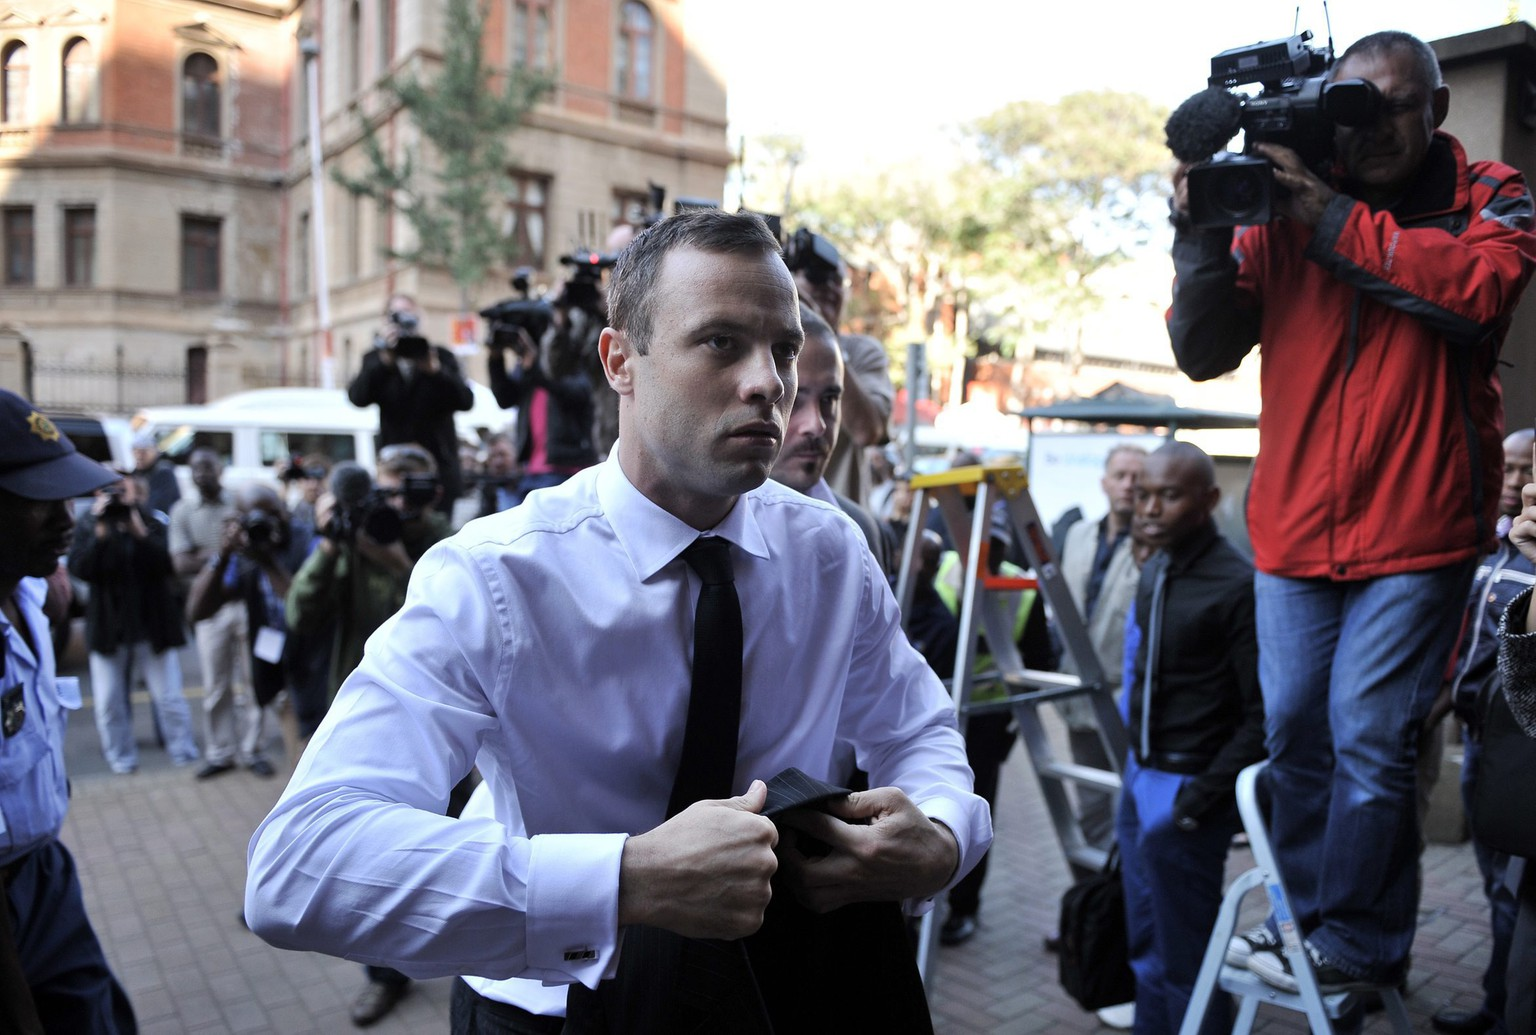 epa04163043 South African Paralympic athlete Oscar Pistorius (C) arrives at court for another day of cross examination in his ongoing murder trial, Pretoria, South Africa, 11 April 2014. Pistorius stands trial for the premeditated murder of his model girlfriend Reeva Steenkamp in February 2013.  EPA/STR SOUTH AFRICA OUT